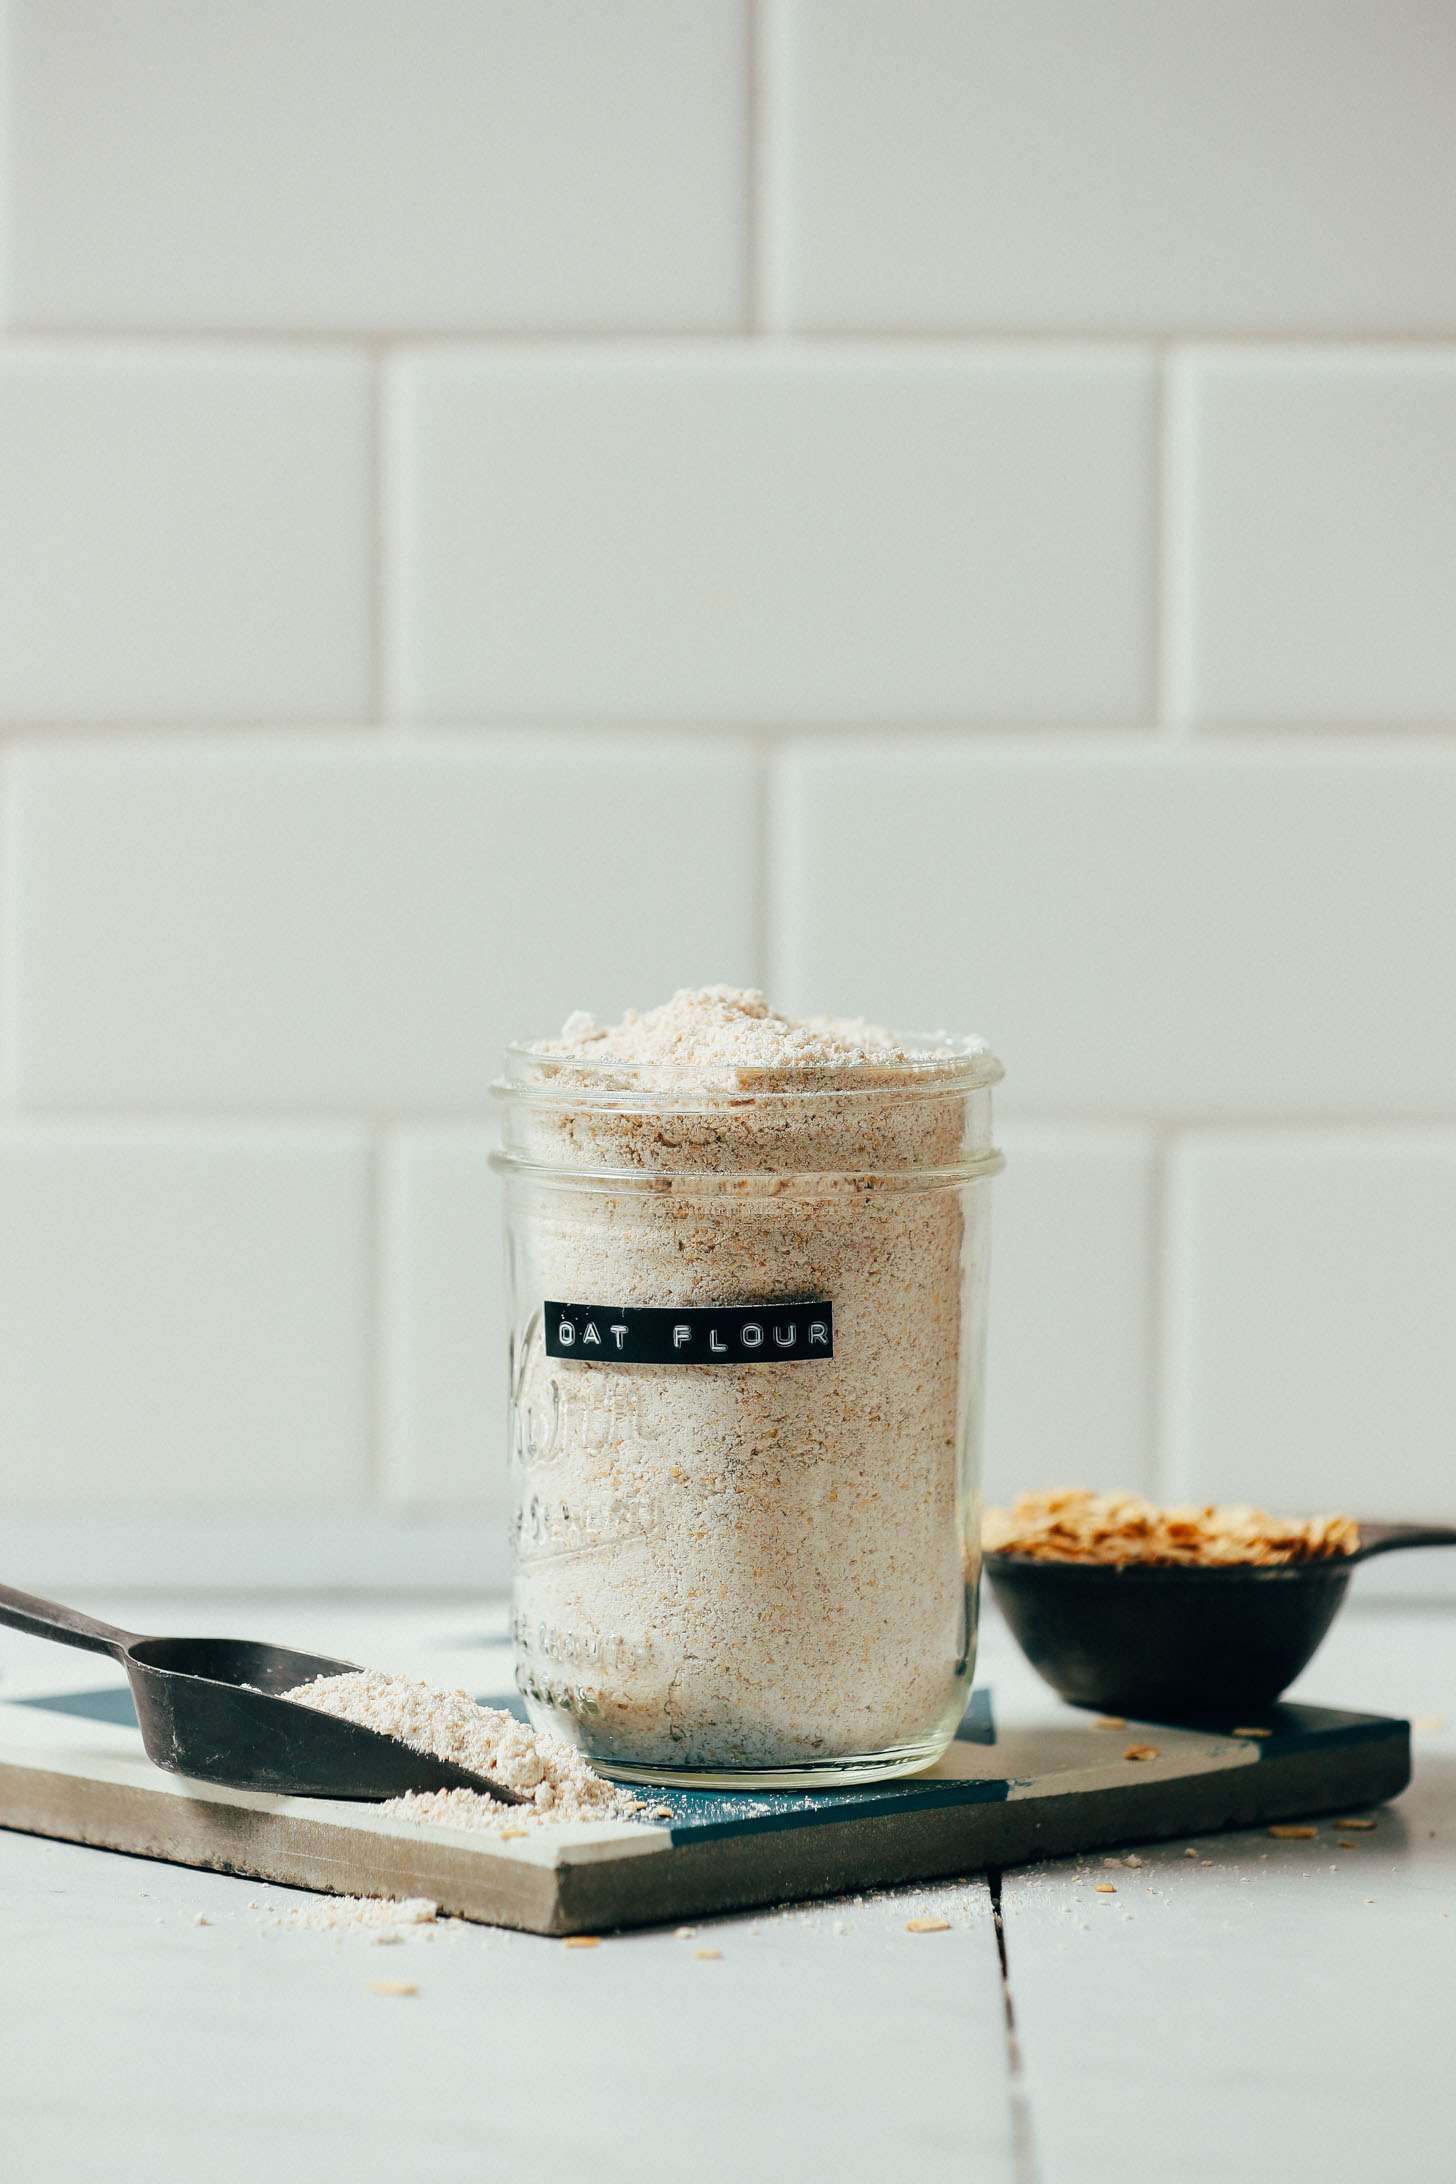 Jar of oat flour for our tutorial on how to make and use gluten-free flours